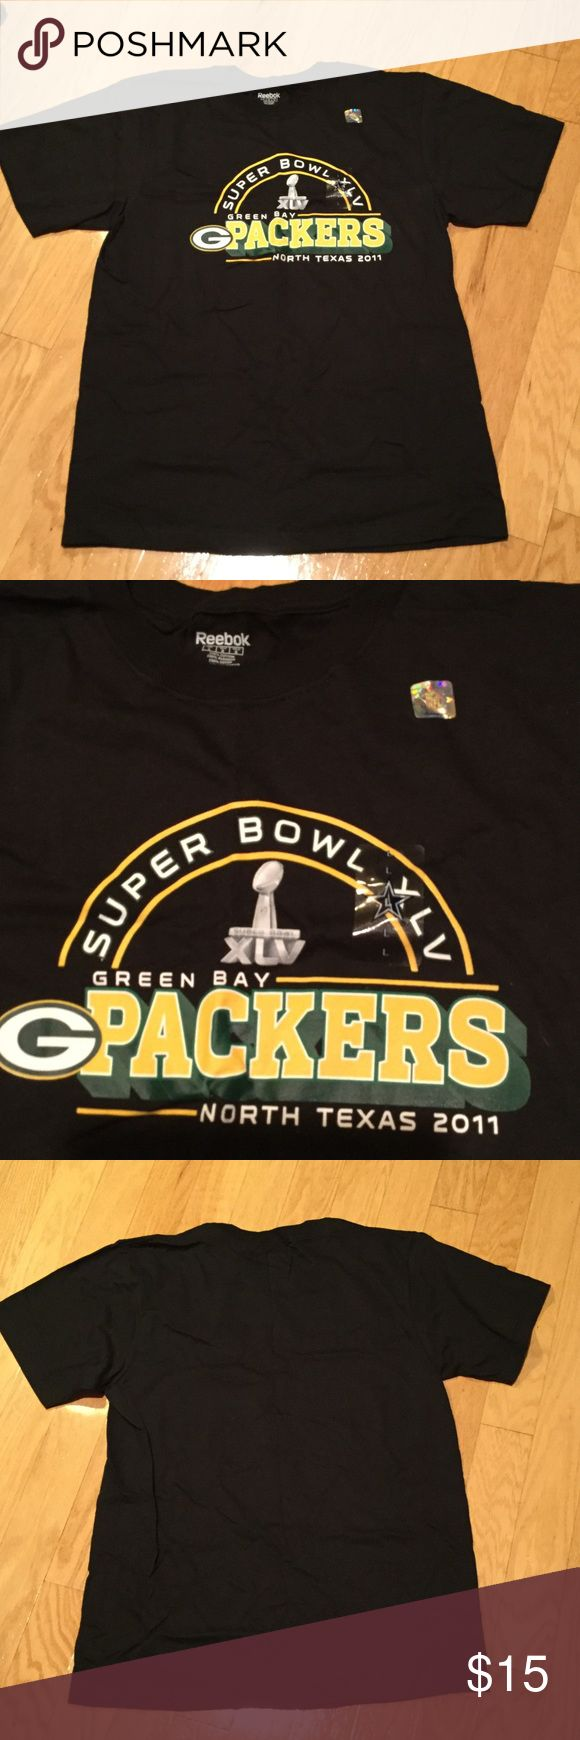 Green Bay Packers Super Bowl Champions T Shirt Green Bay Packers Super Bowl Champions t shirt.  Brand new with tags still on shirt. Reebok Shirts Tees - Short Sleeve